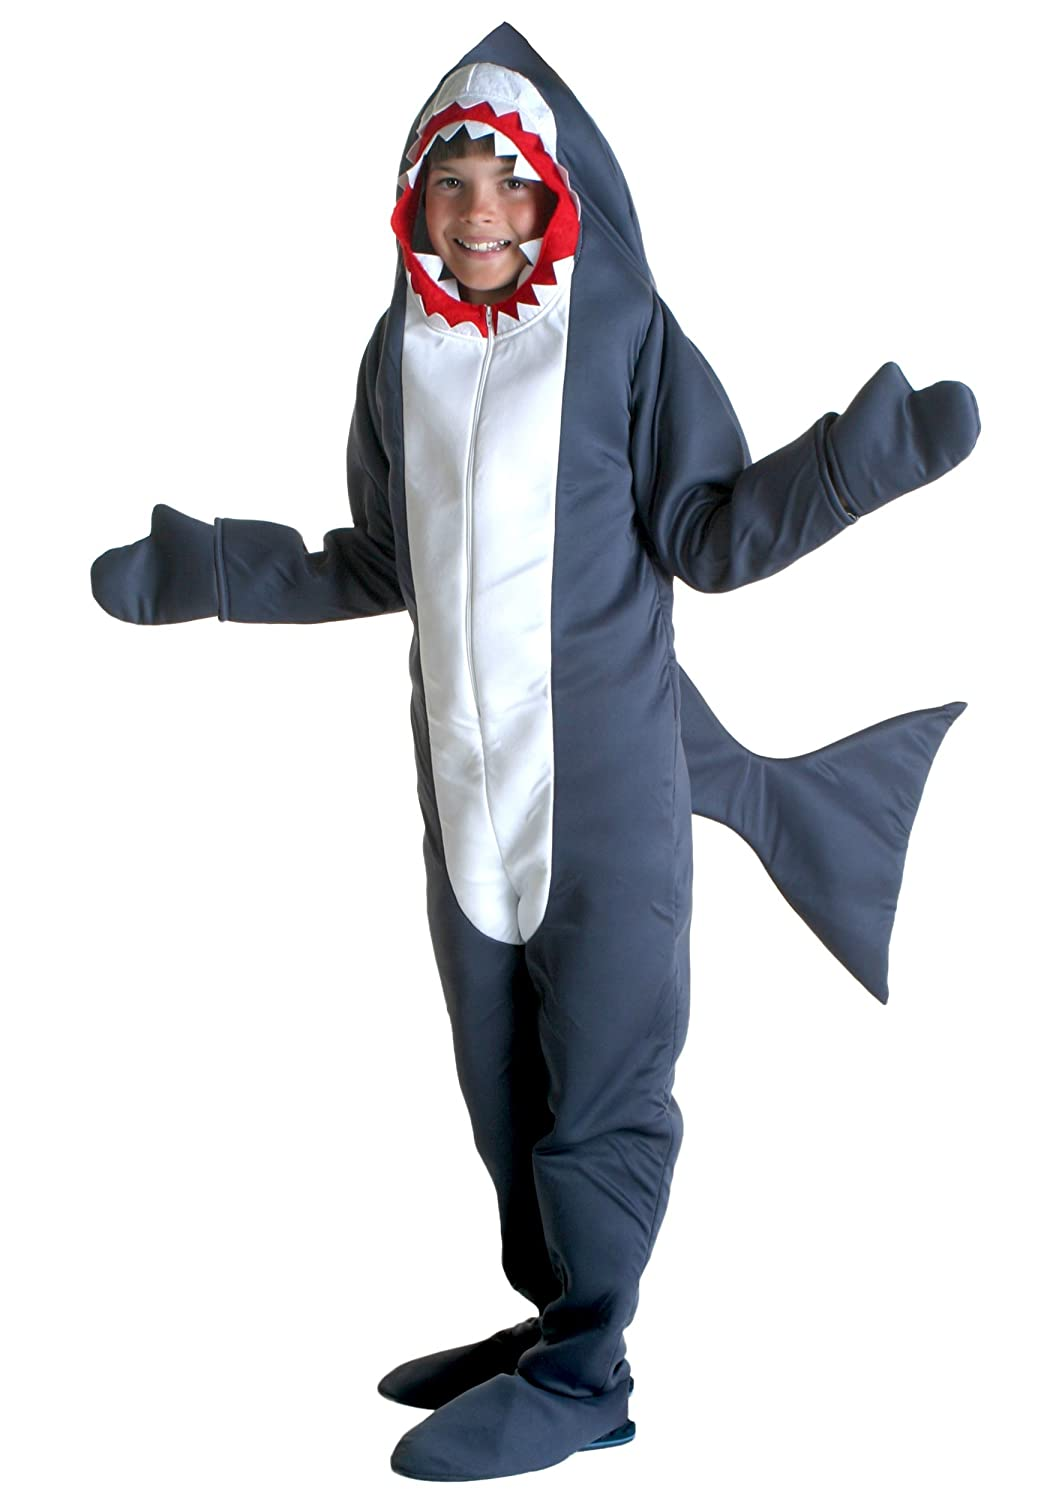 Fun Costumes Big Boys' Shark Jumpsuit Costume